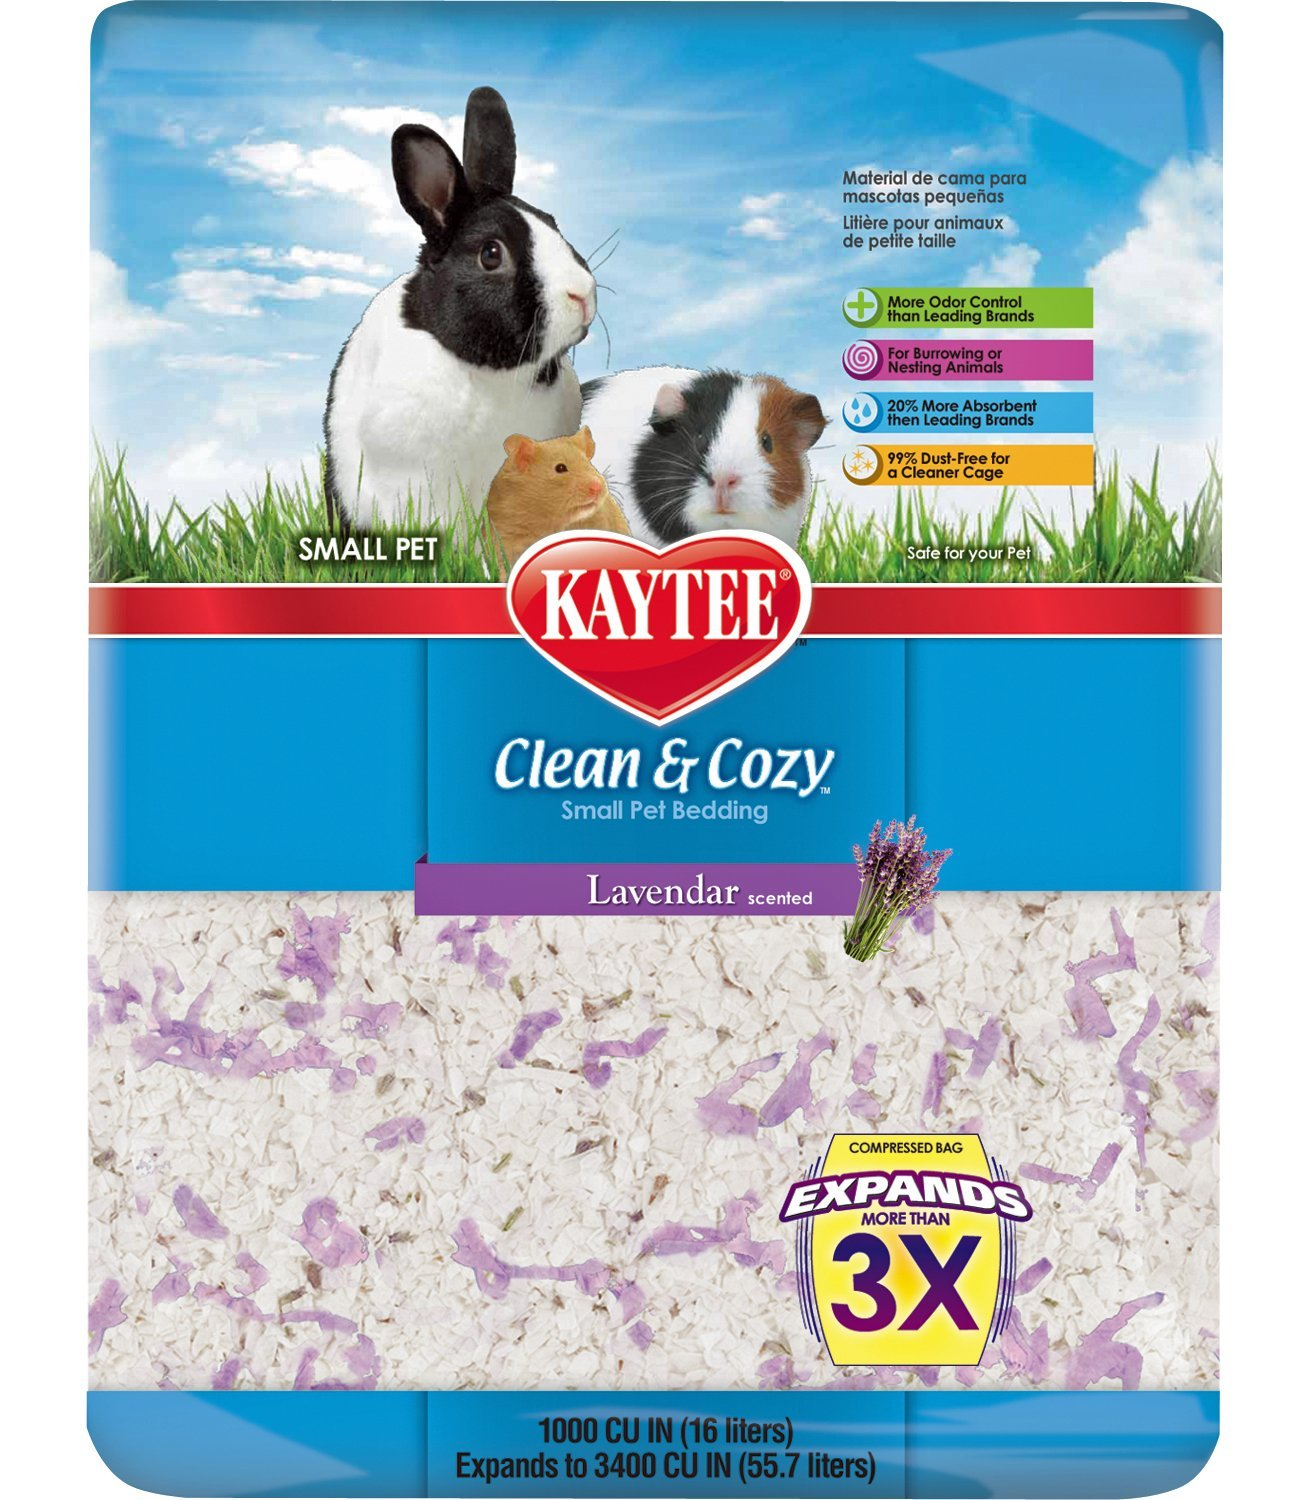 kaytee clean and cozy bedding, lavender, 1000-cubic-inch , new